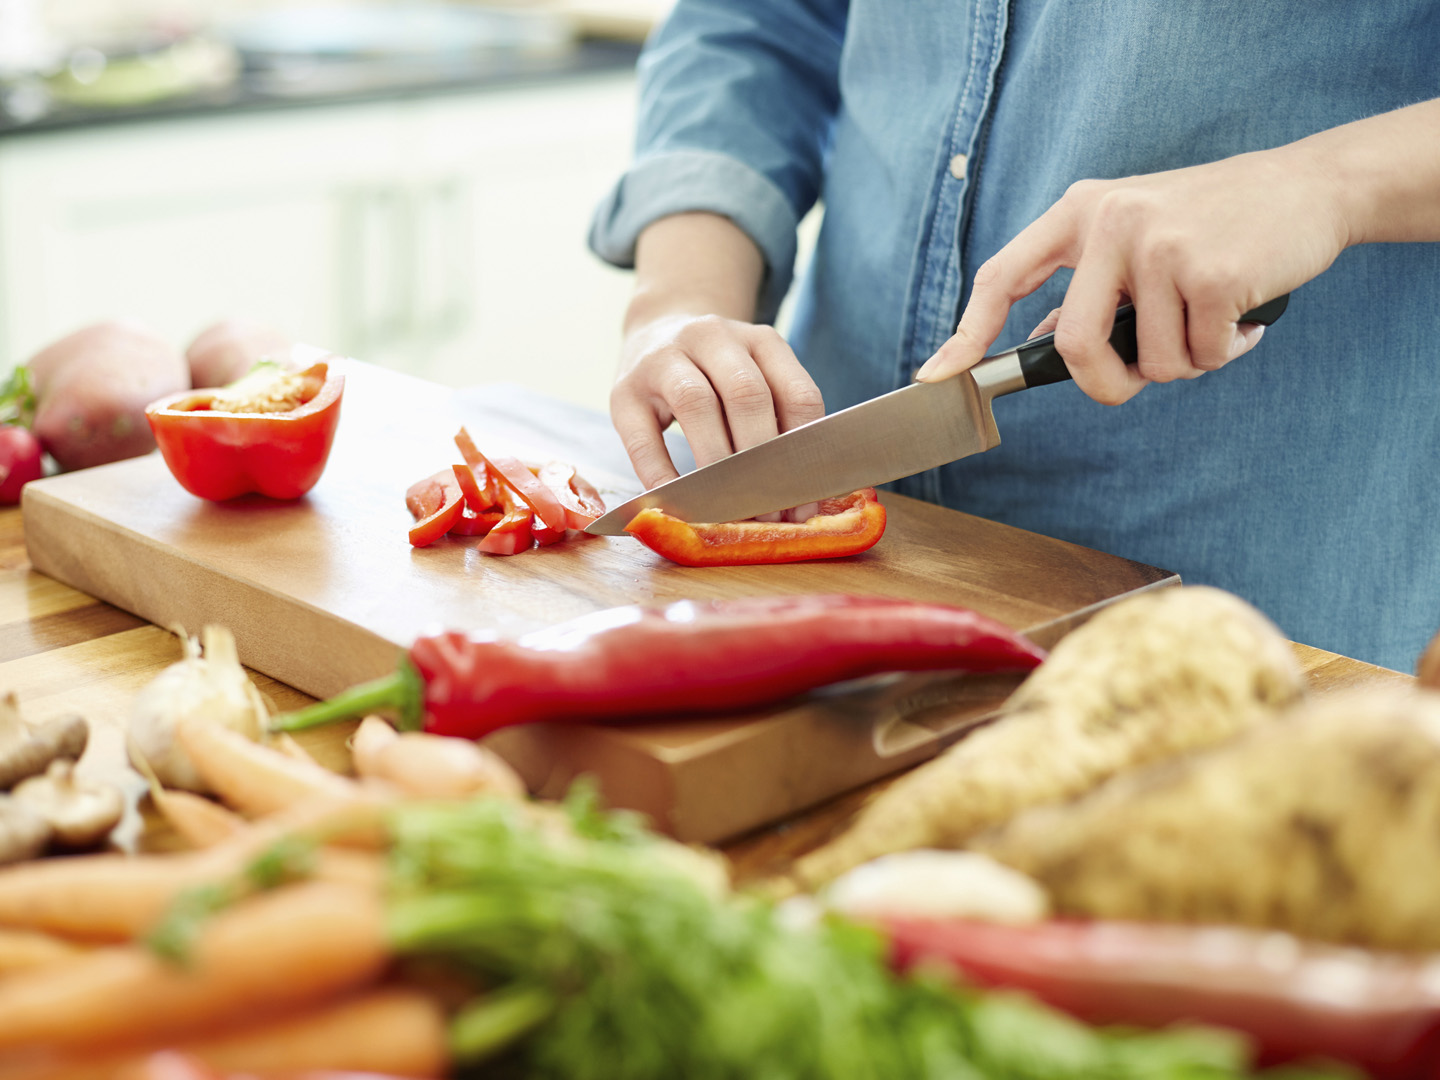 5 foods that may help prevent stroke